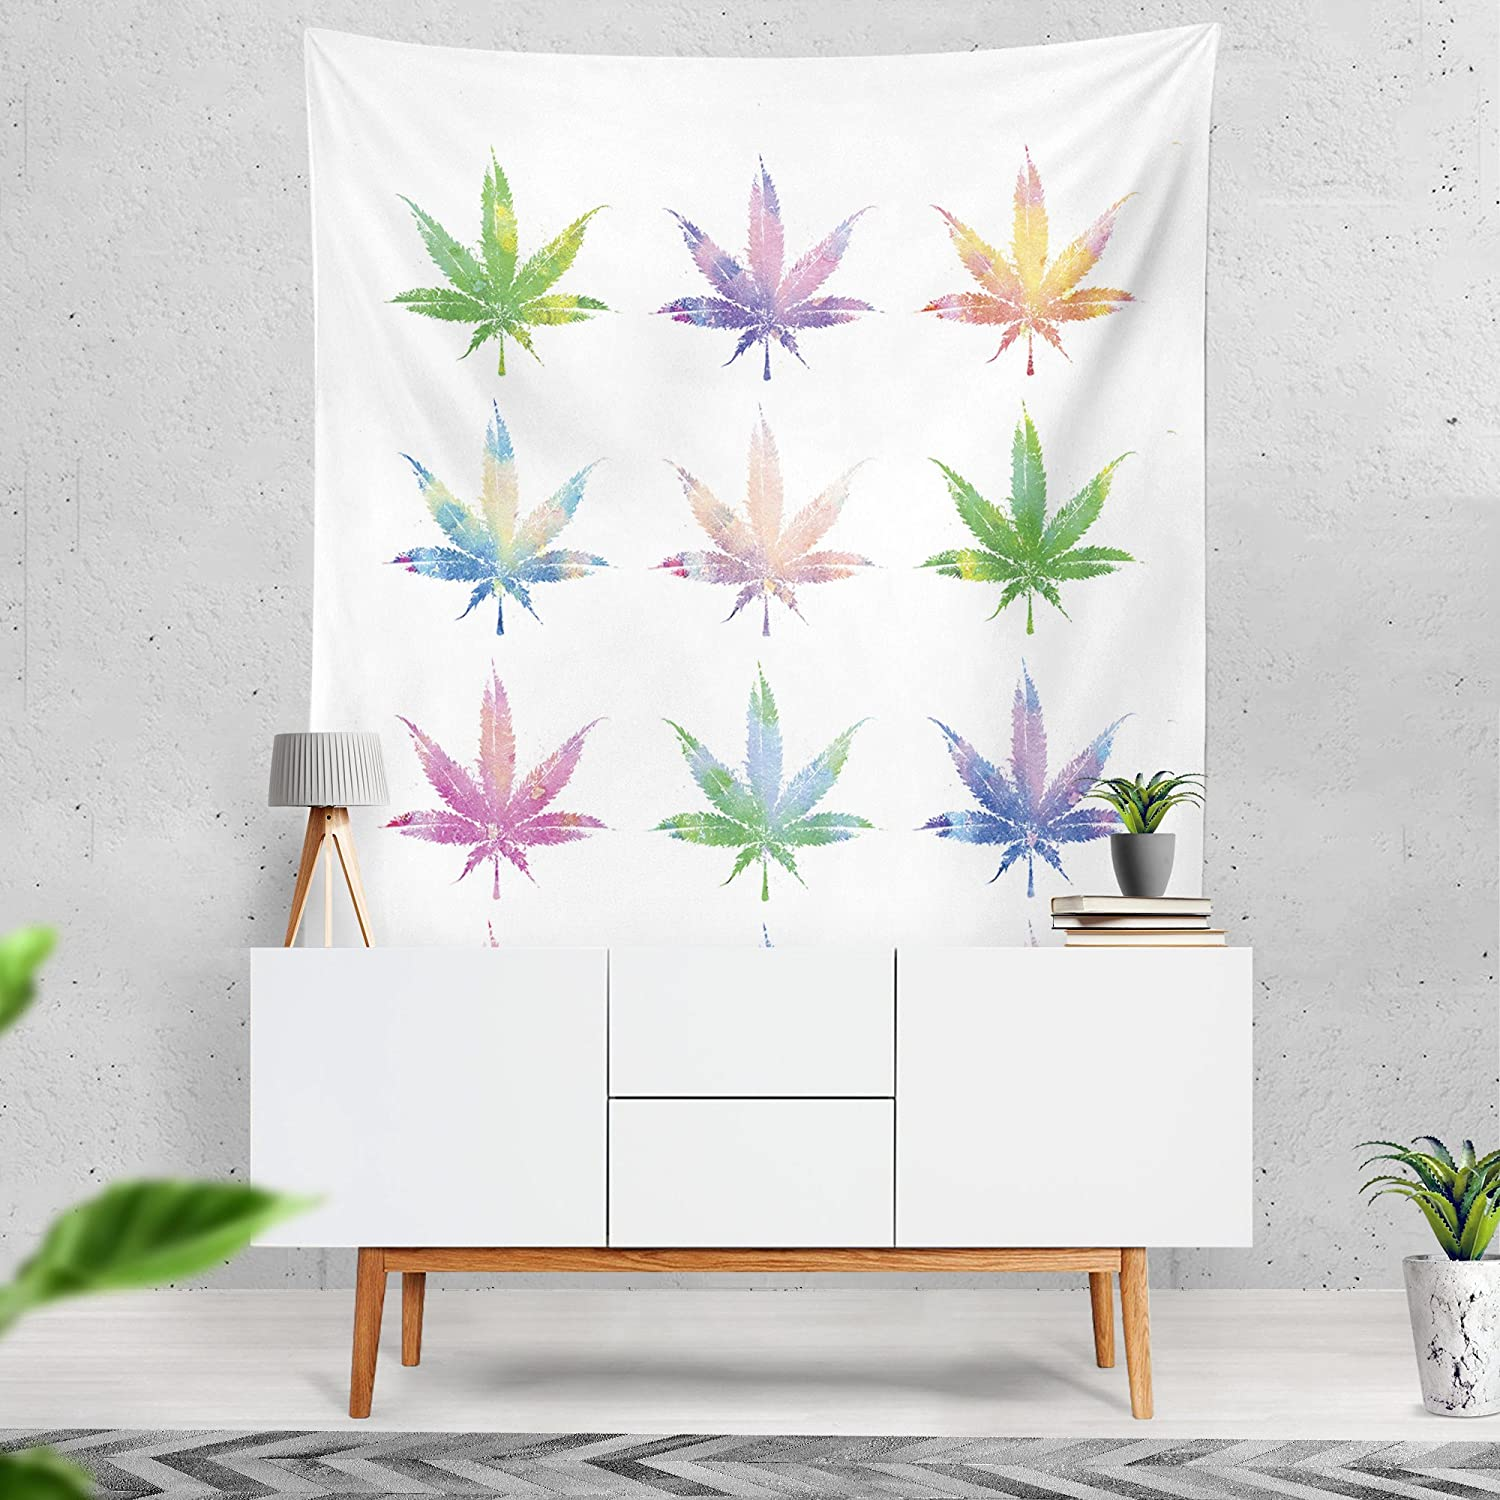 Lume.ly - Sweet Colorado Marijuana Weed Cannabis Pot Leaf Plant Wall Art Tapestry for Bedroom, Unique Luxury Designer Vibrant Home Decor (White Multi Color) (60x80, White)